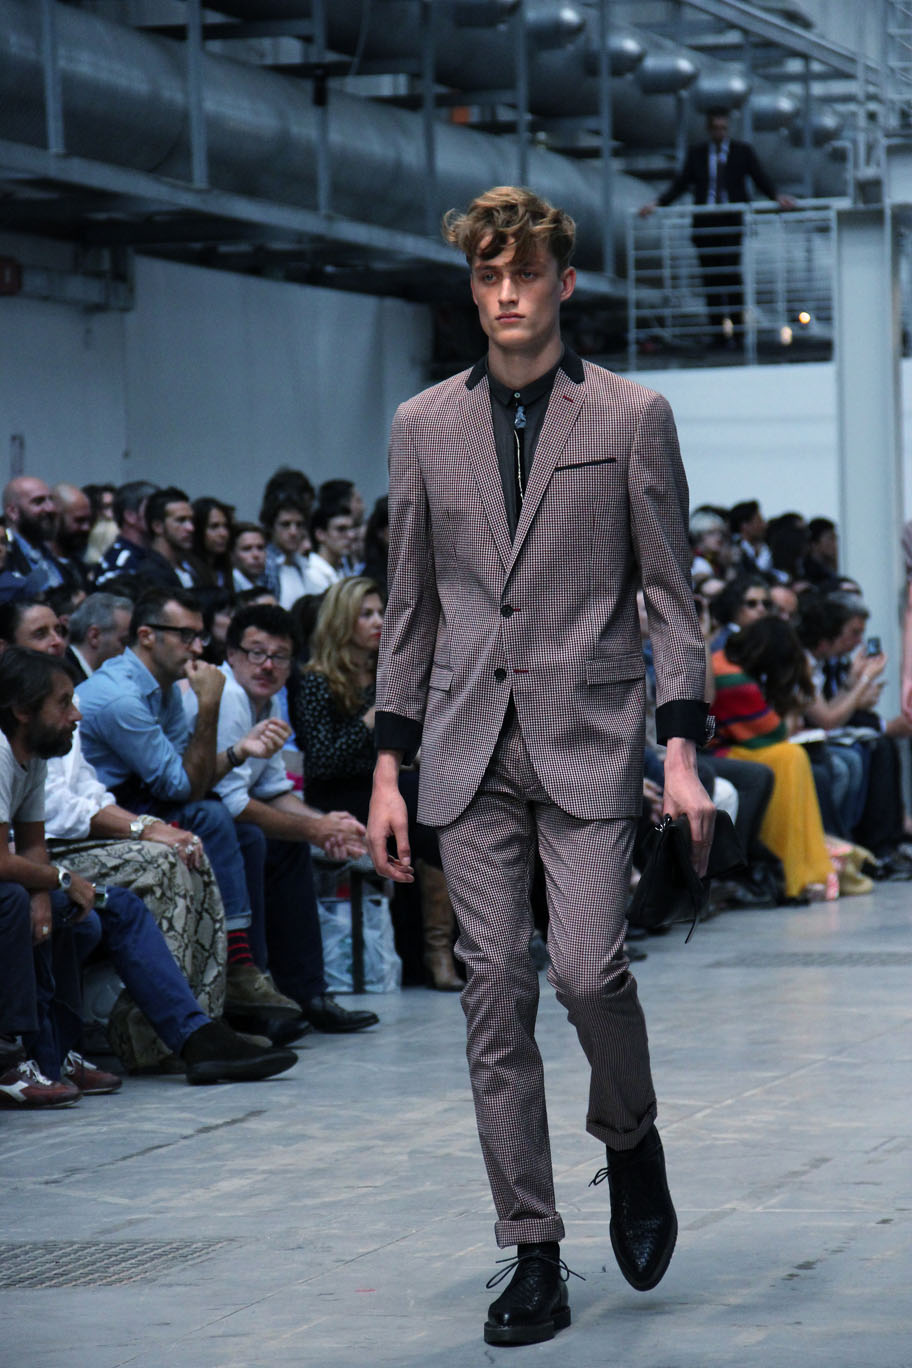 costume-national-homme-spring-summer-2012-fashion-show-catwalk